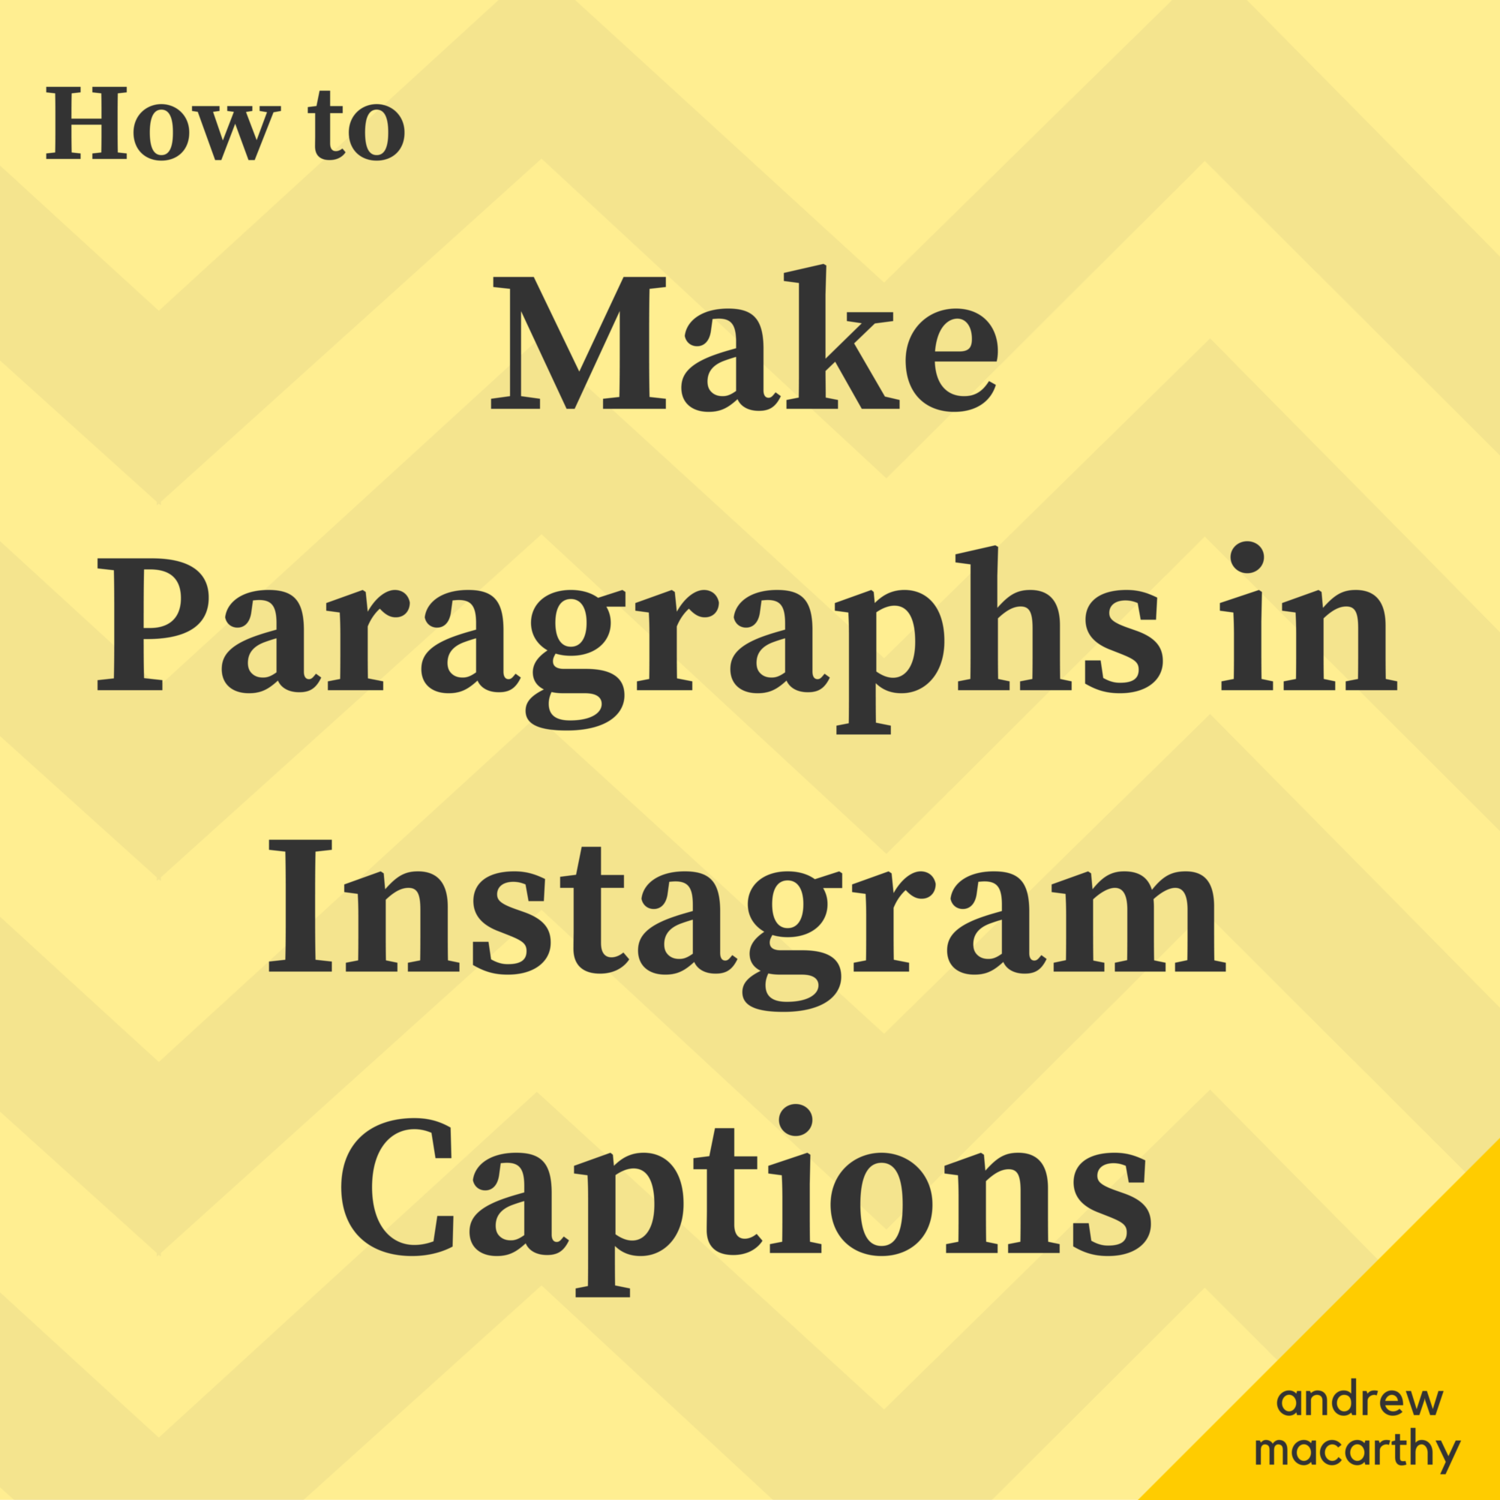 How To Add Paragraphs To Instagram Captions In 3 Easy